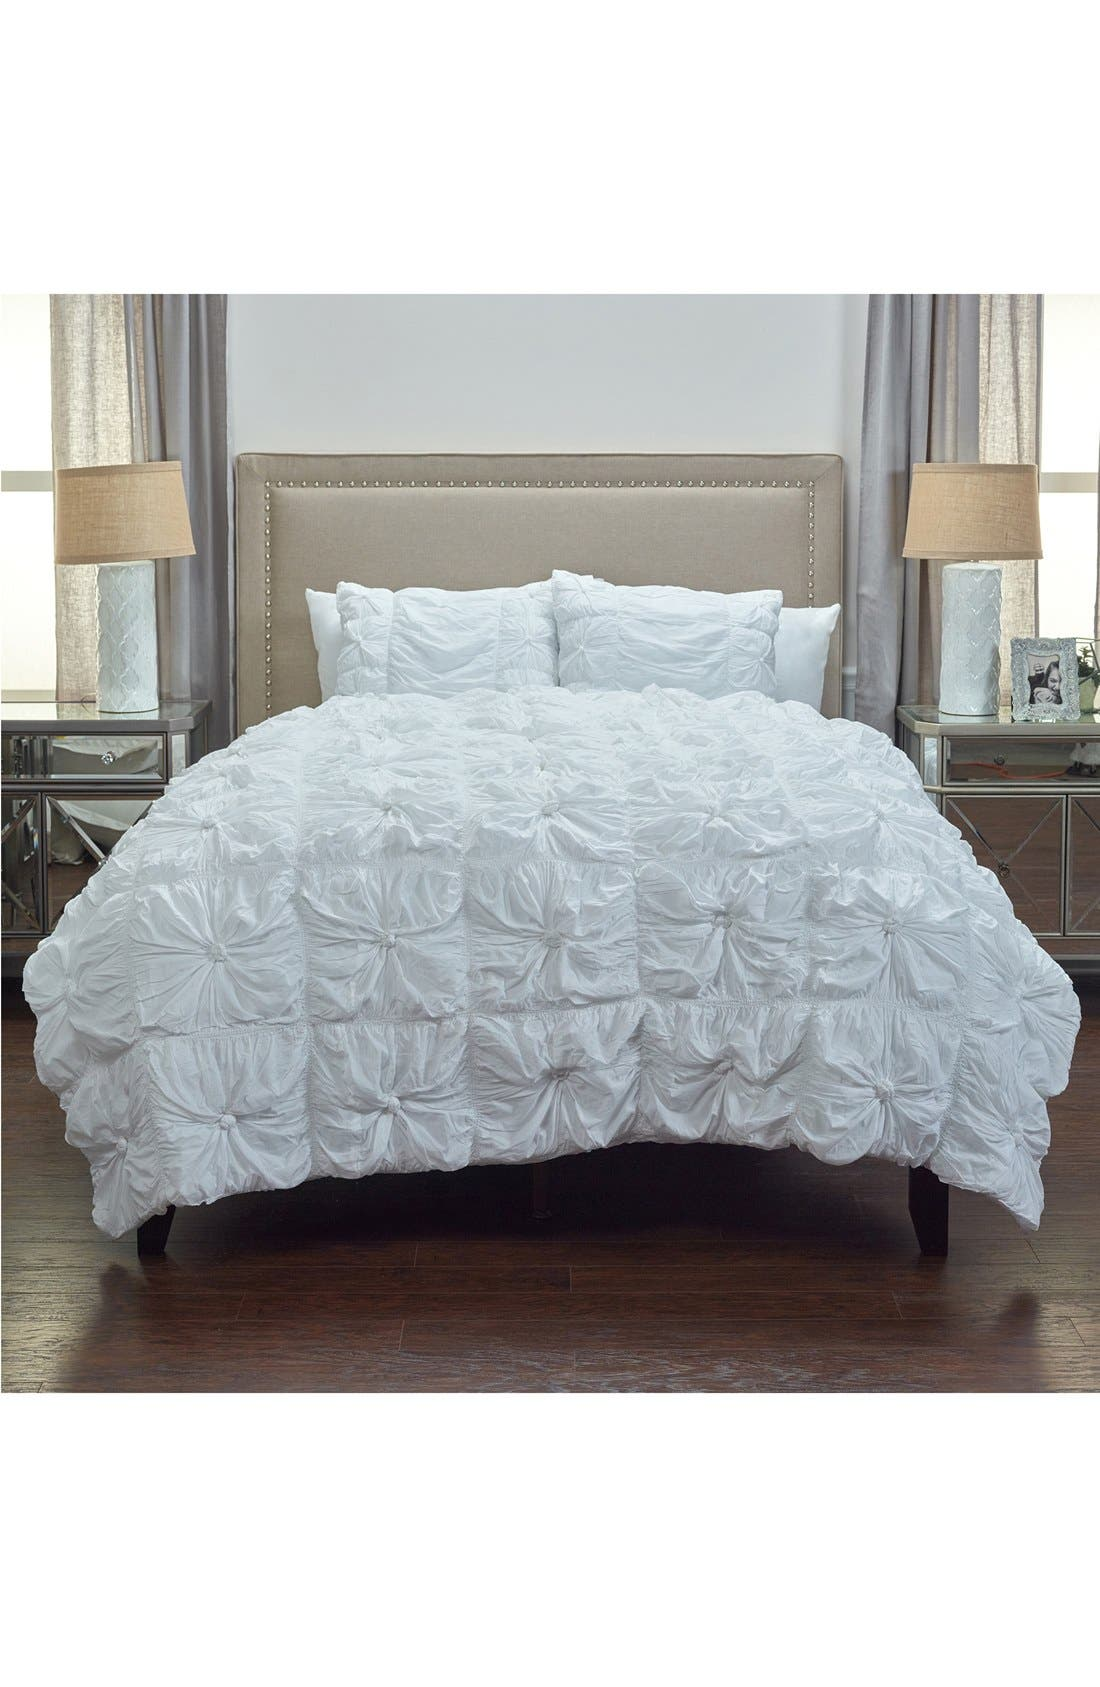 Alternate Image 1 Selected - Rizzy Home Knots Comforter & Sham Set